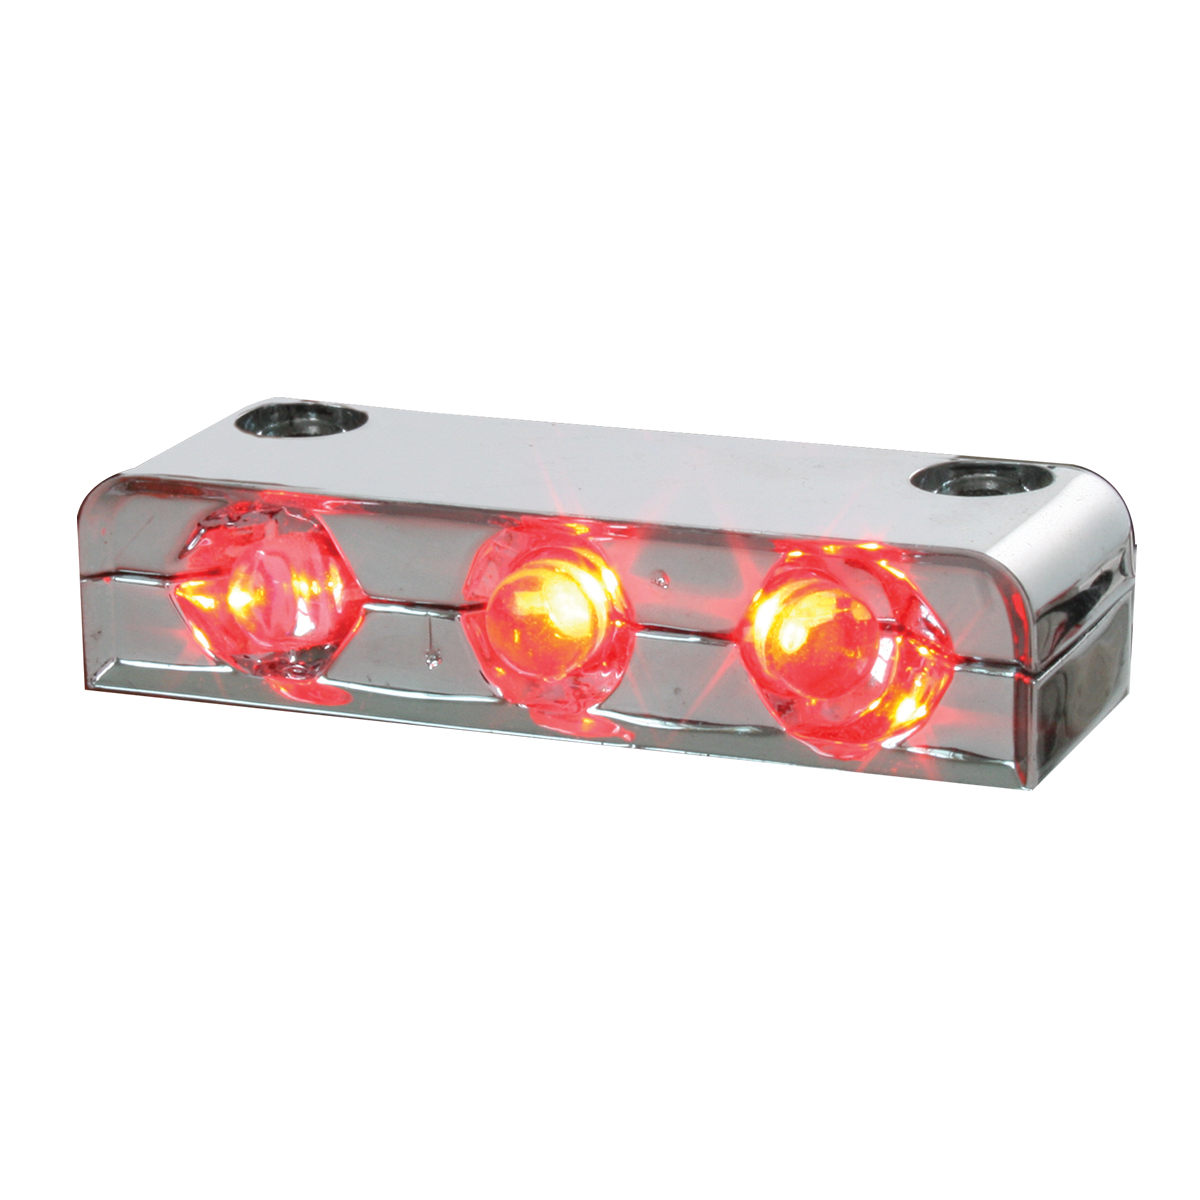 87403 Red 3 LED Step Light w/ Chrome Housing